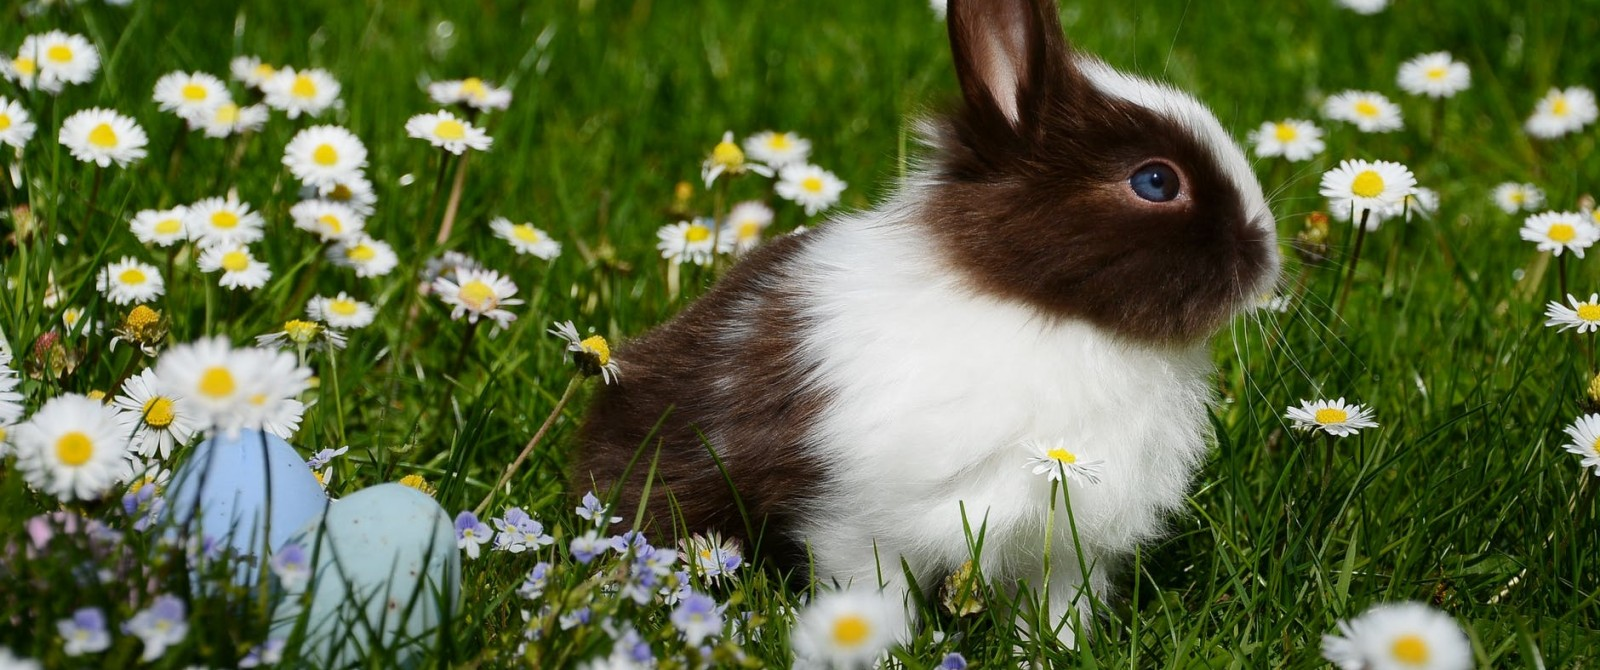 rabbit in field of daisies